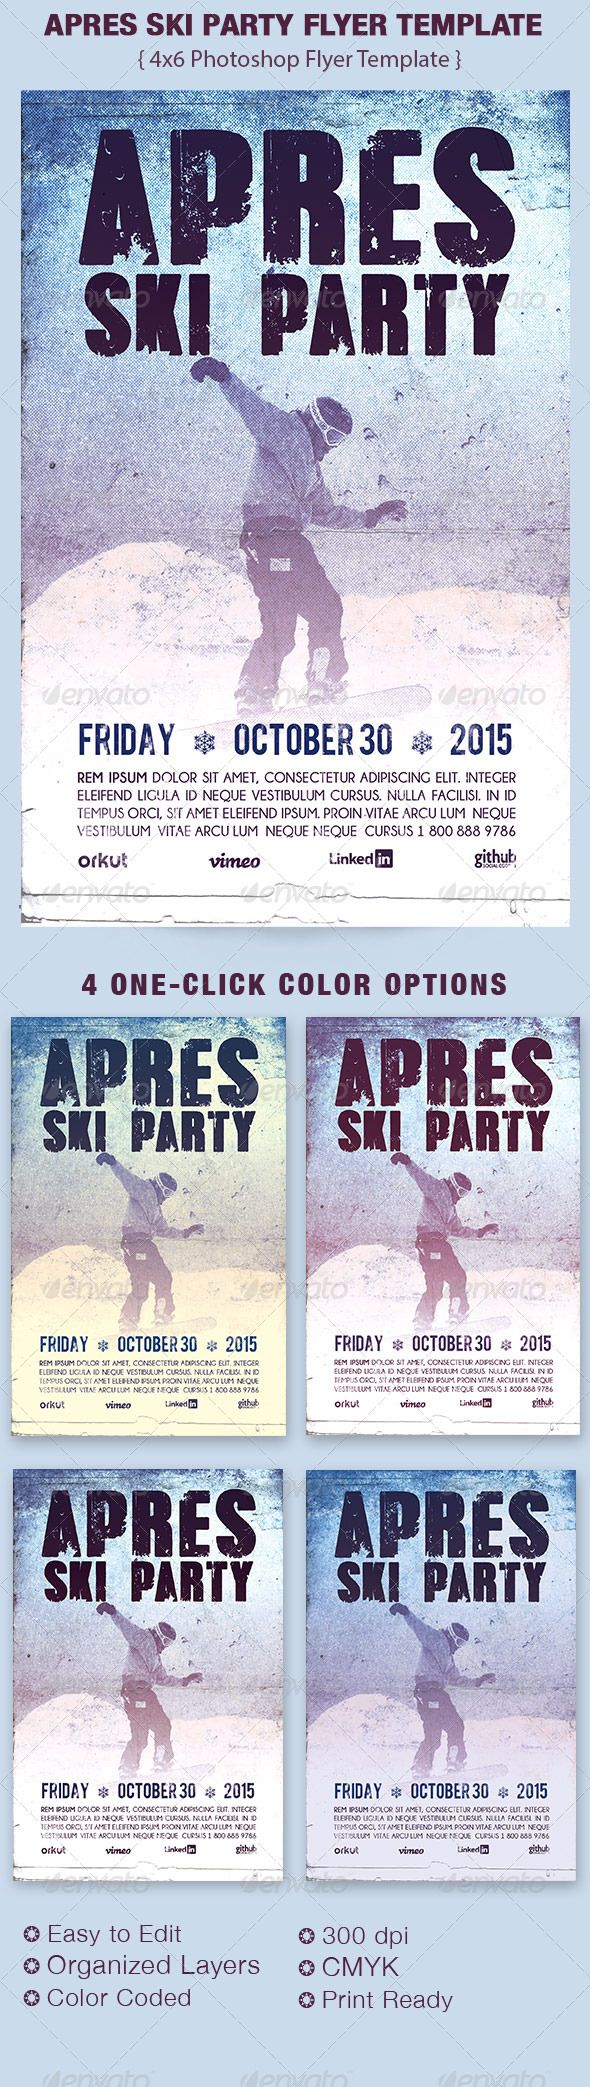 Apres Ski Party Flyer Template - $6.00 The Apres Ski Party Flyer Template is great for any winter Party or concert event. In this package you'll find 1 Photoshop file. 4 One-Click color options are included. All layers are arranged, color coded and simple to edit. Sold exclusively on graphicriver.net